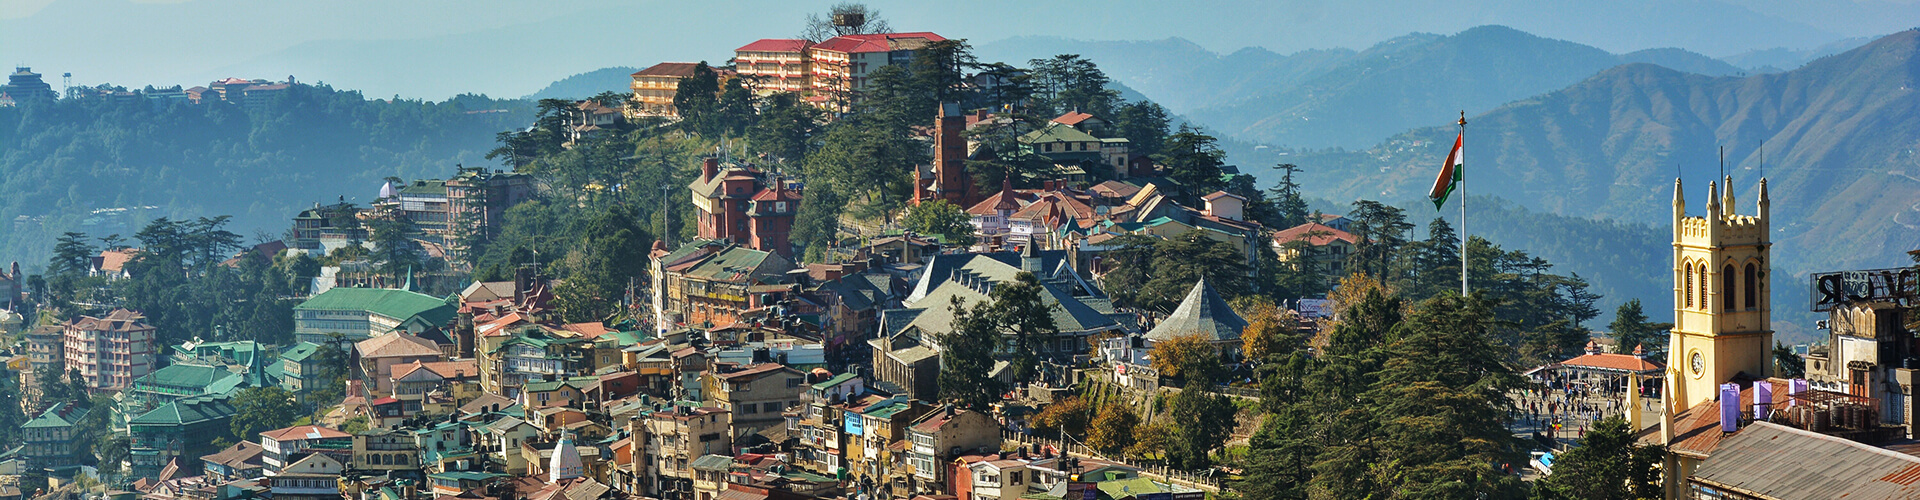 things-to-do-in-shimla